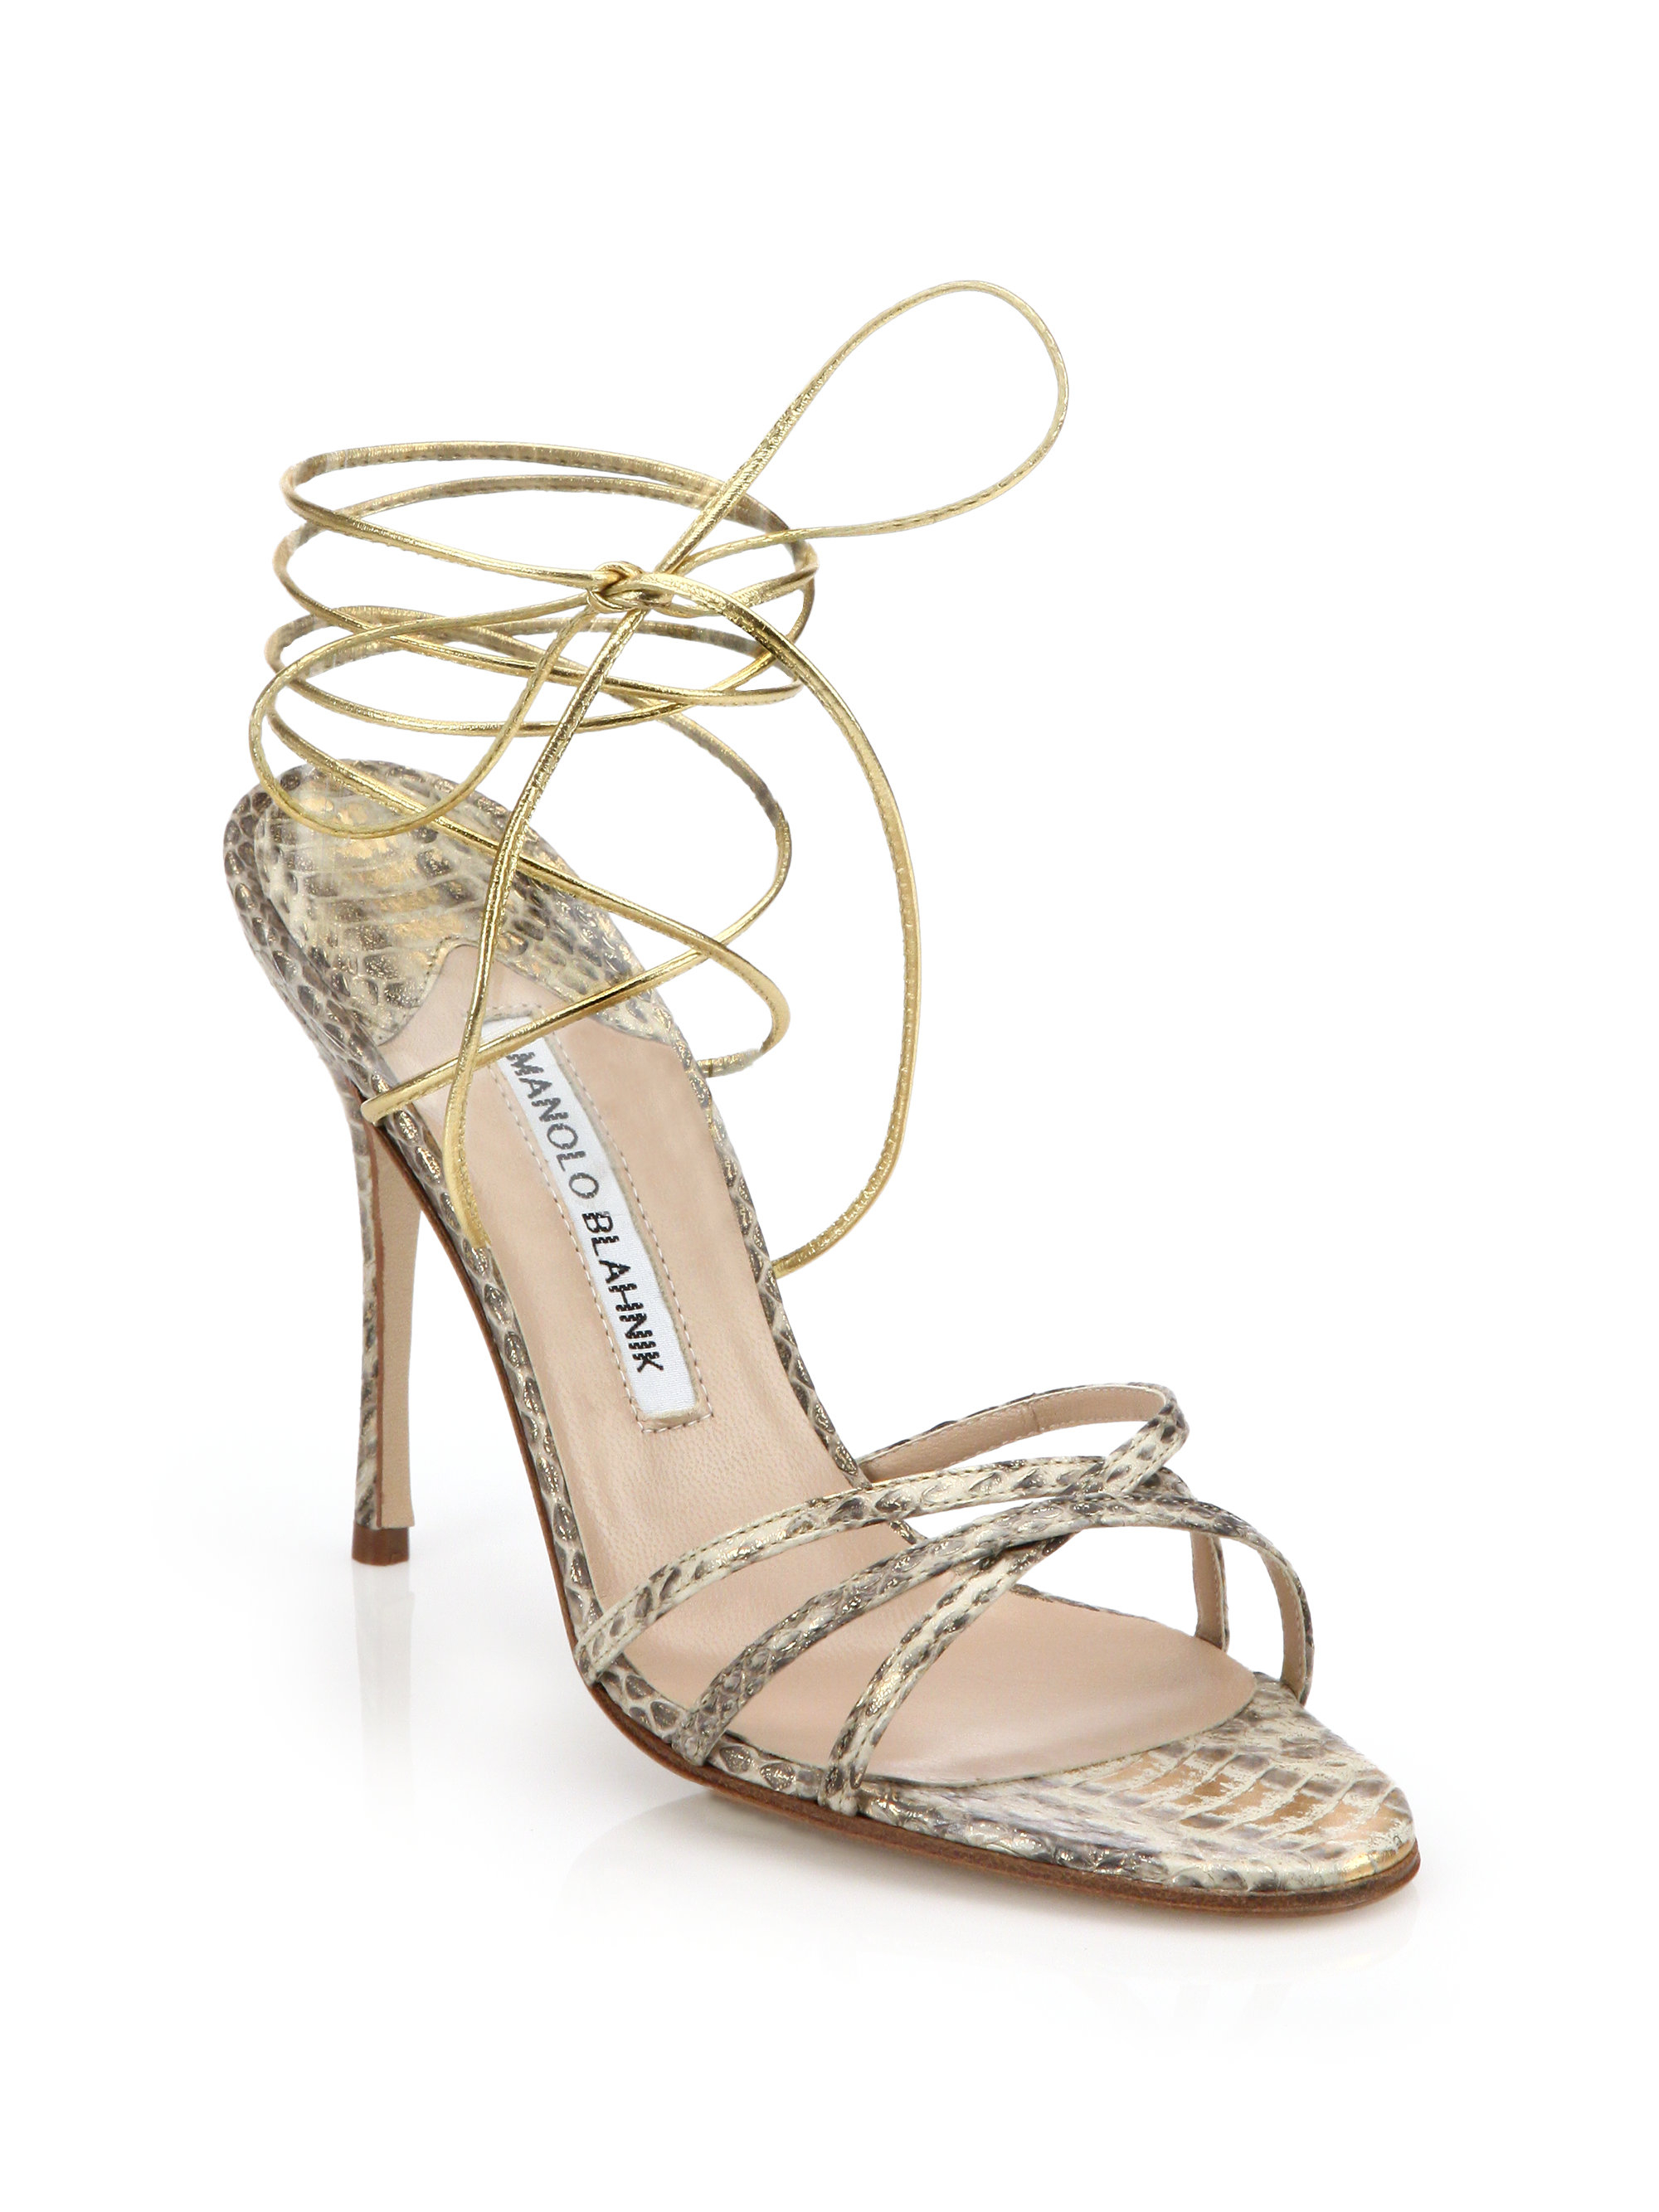 cheap popular Manolo Blahnik Snakeskin Cage Sandals free shipping for sale for sale cheap real with mastercard sale online AKJ0K